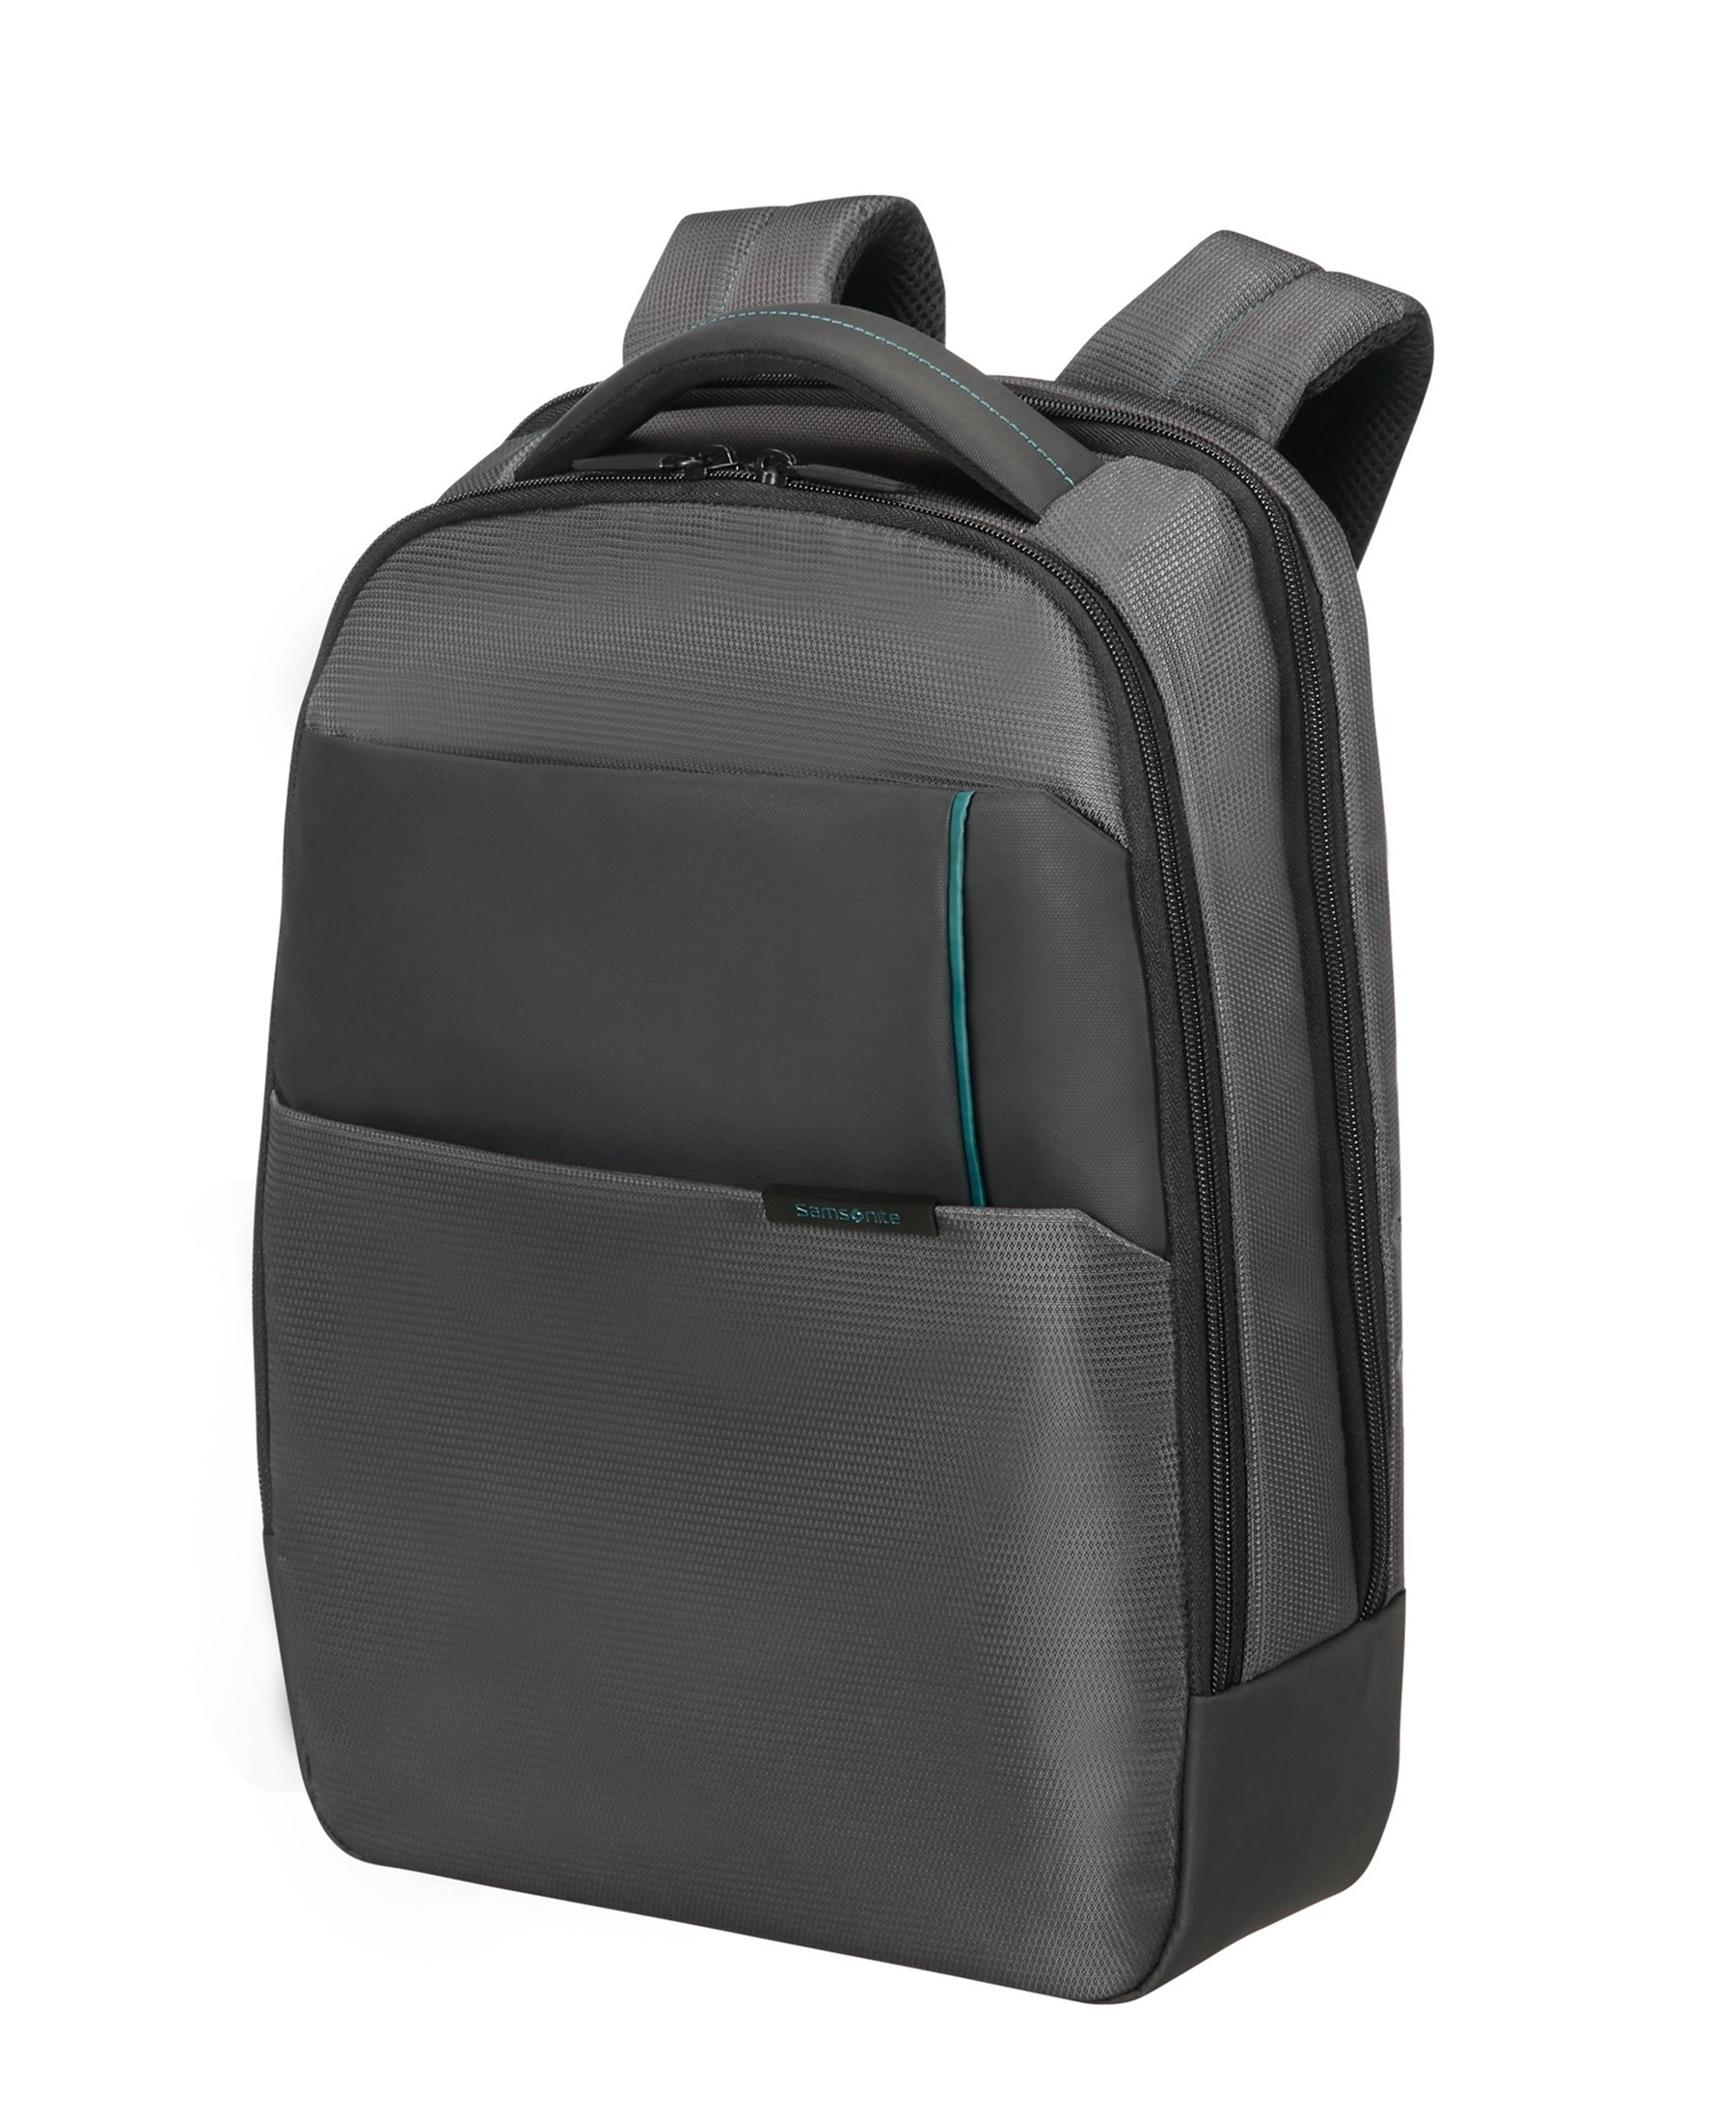 SAMSONITE - BORSE NOTEBOOK - 5414847698286